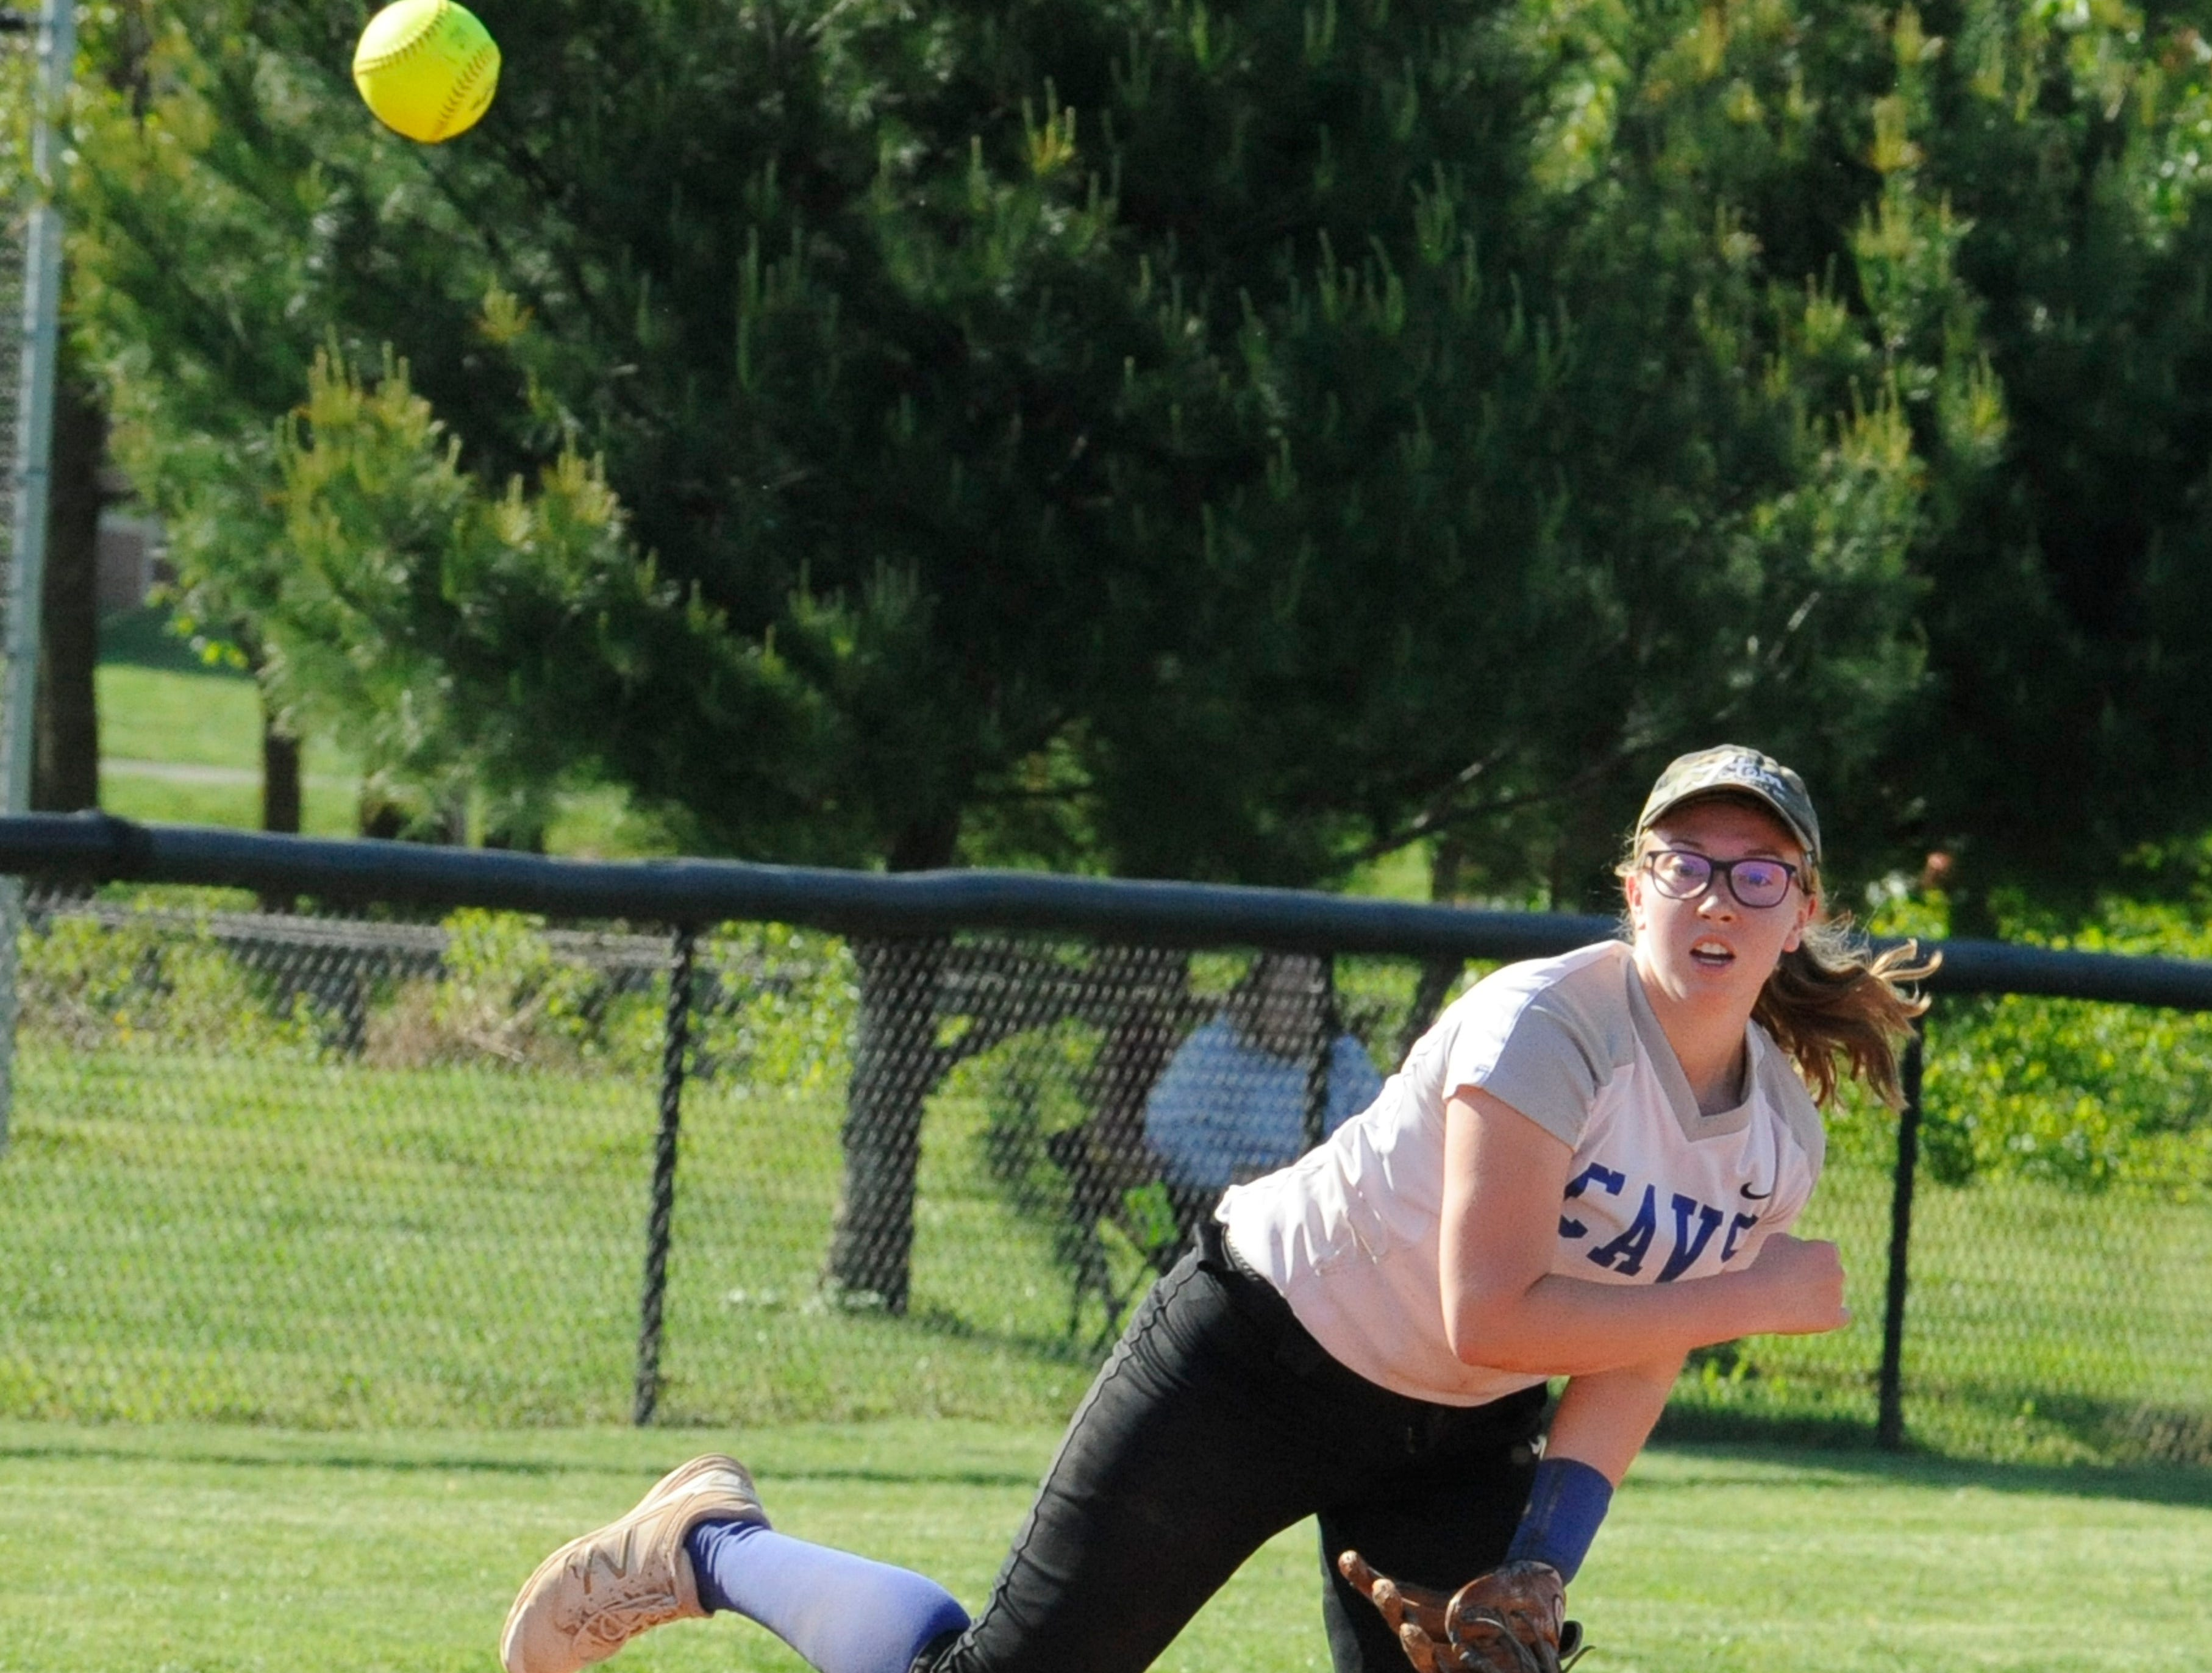 Unioto softball defeated Chillicothe 14-1 Monday night at Unioto High School on May 6, 2019.